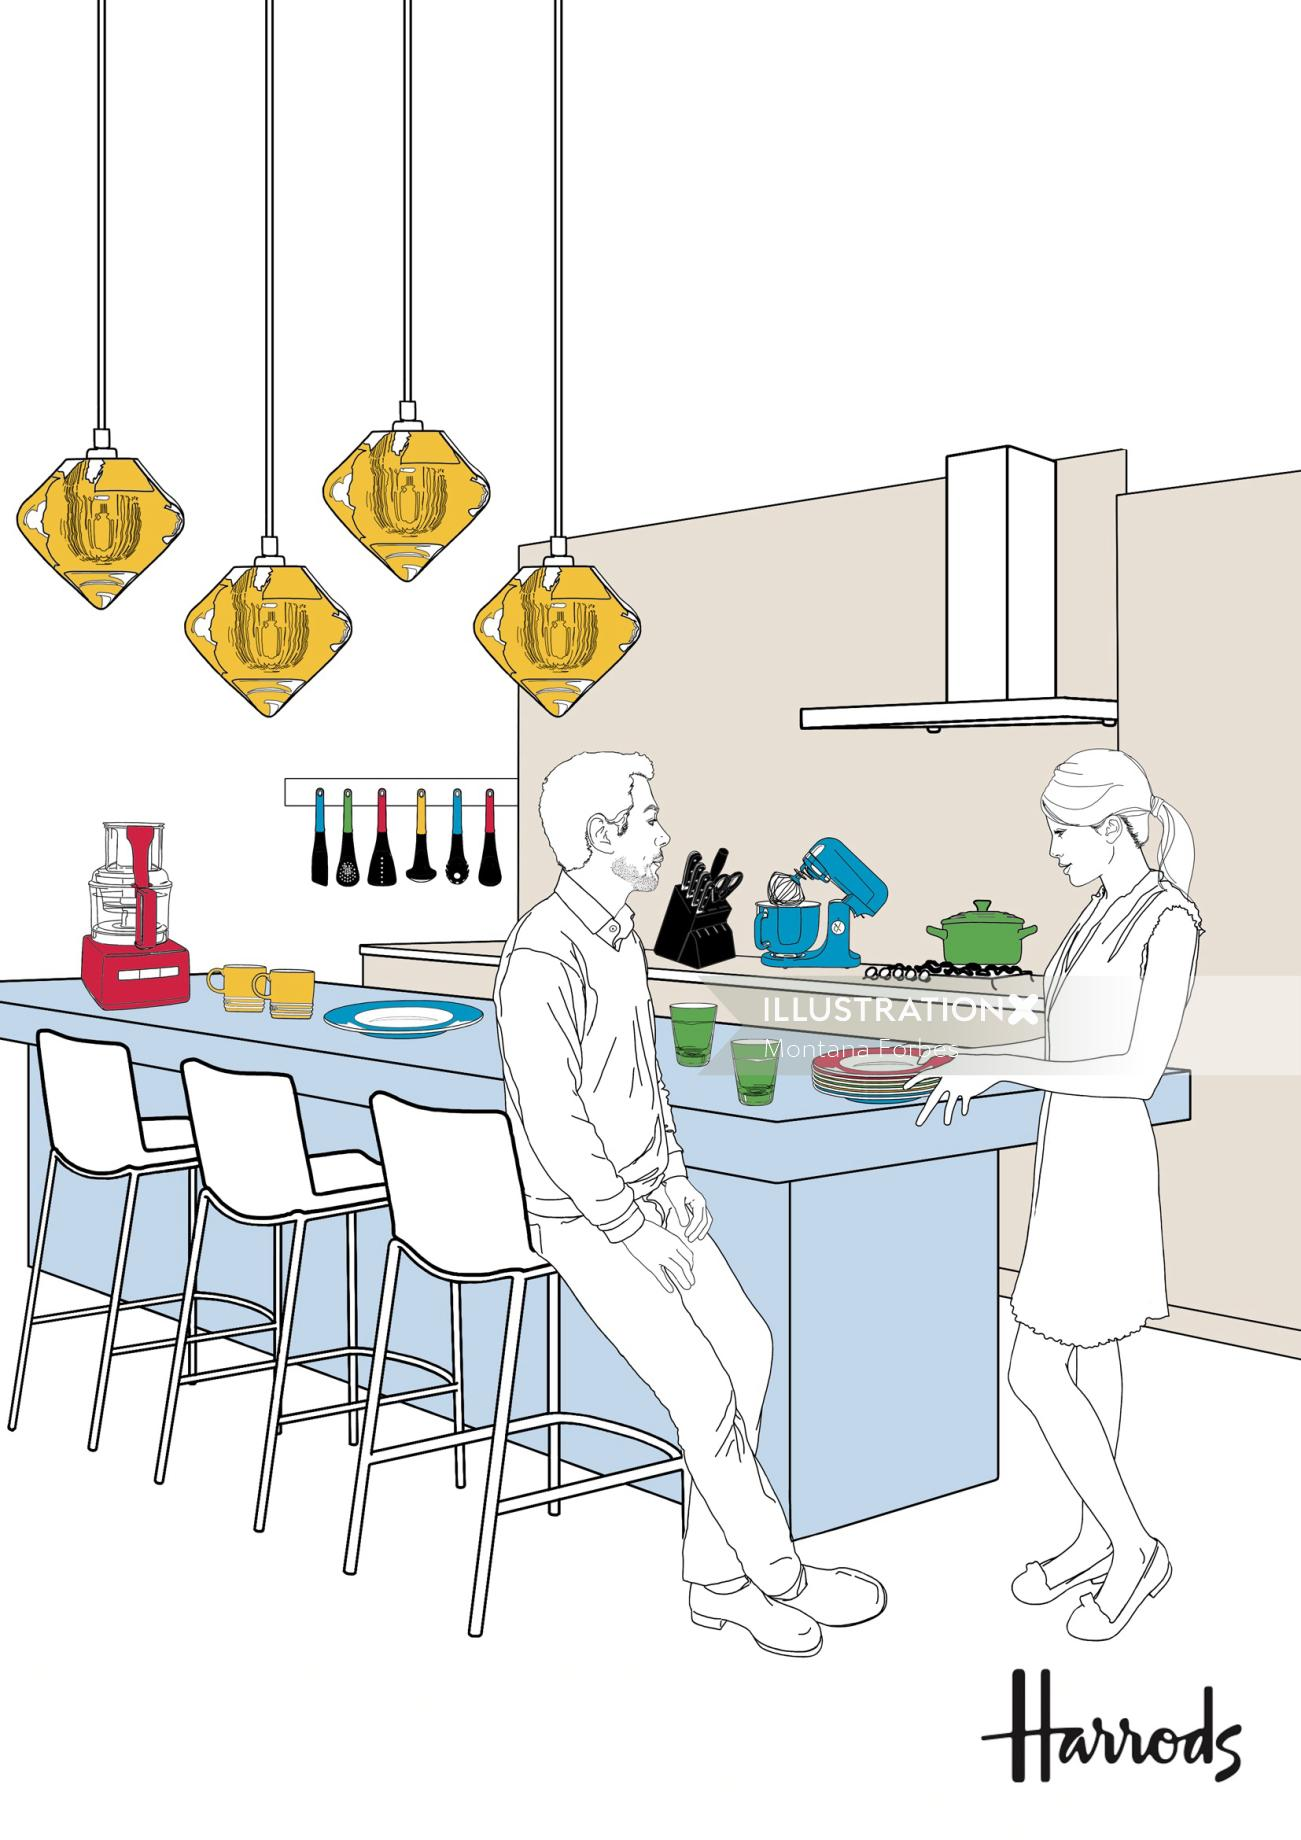 Illustration of kitchen and dining